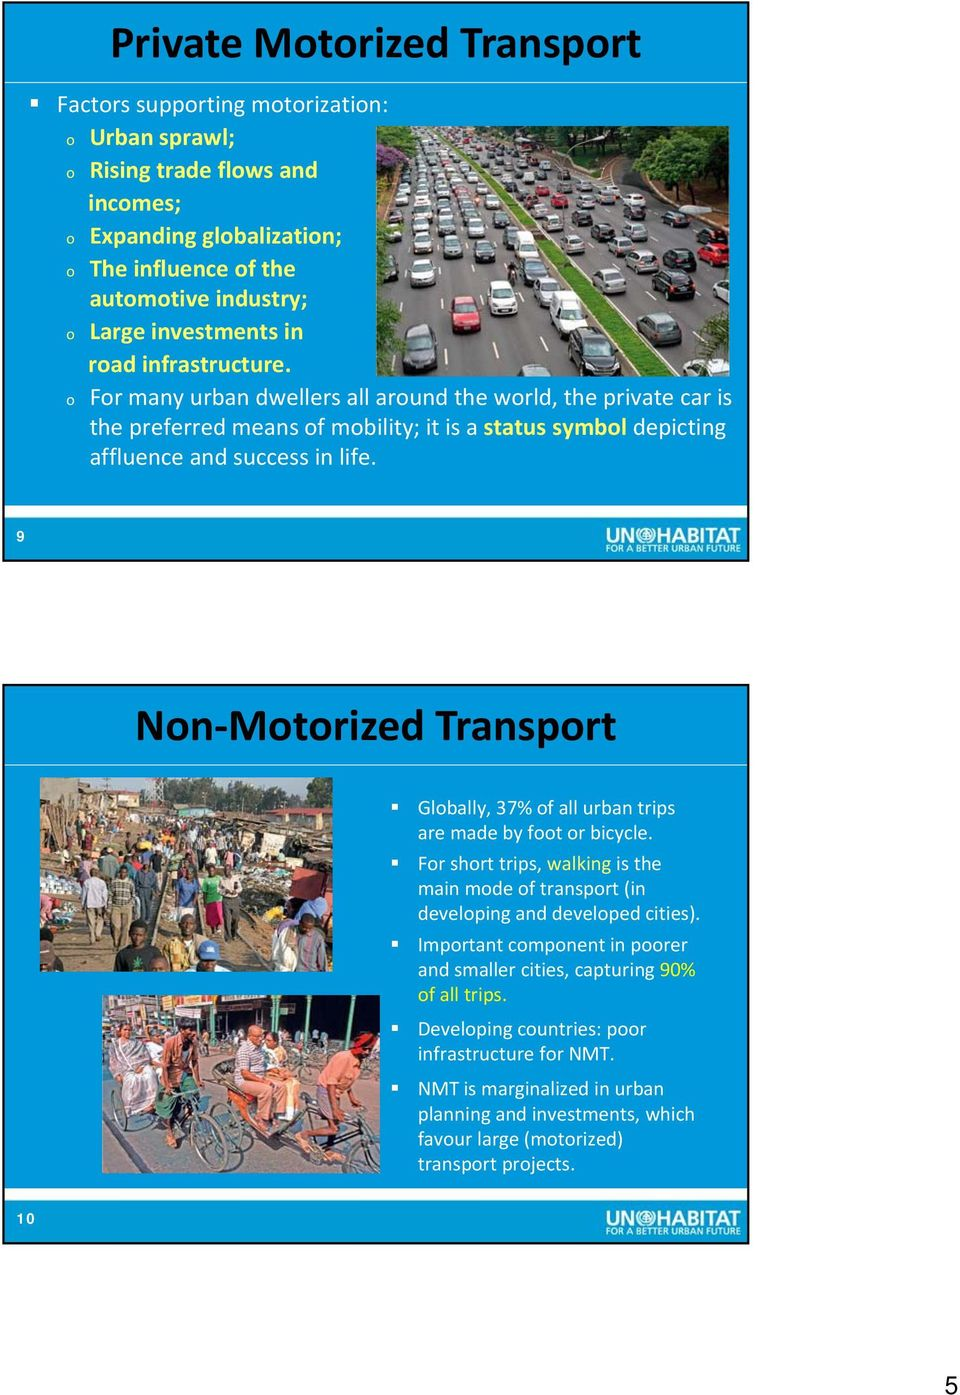 9 (NMT) Non Motorized Transport Globally, 37% of all urban trips are made by foot or bicycle. For short trips, walking is the main mode of transport (in developing and developed cities).